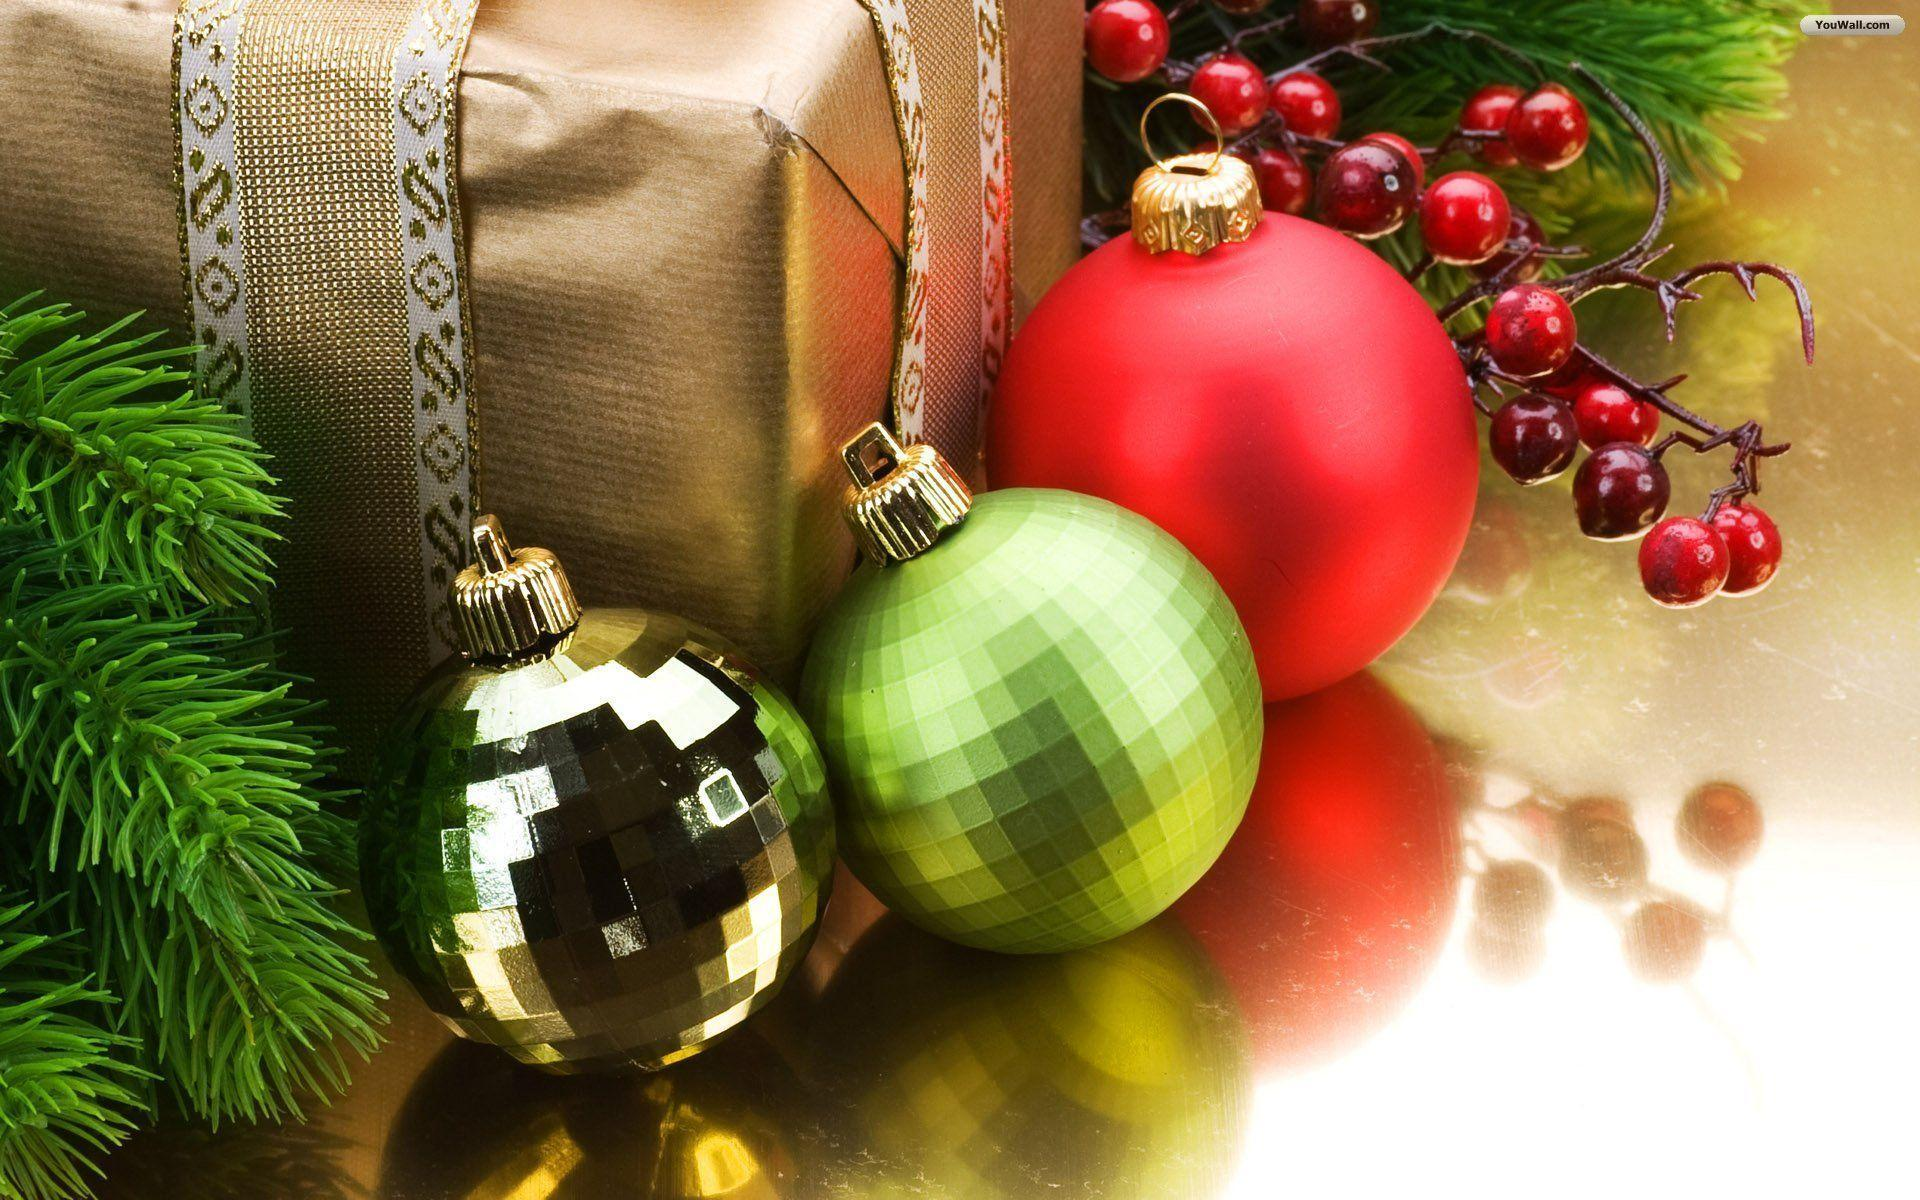 Christmas Ornaments Wallpapers - HD Wallpapers Inn